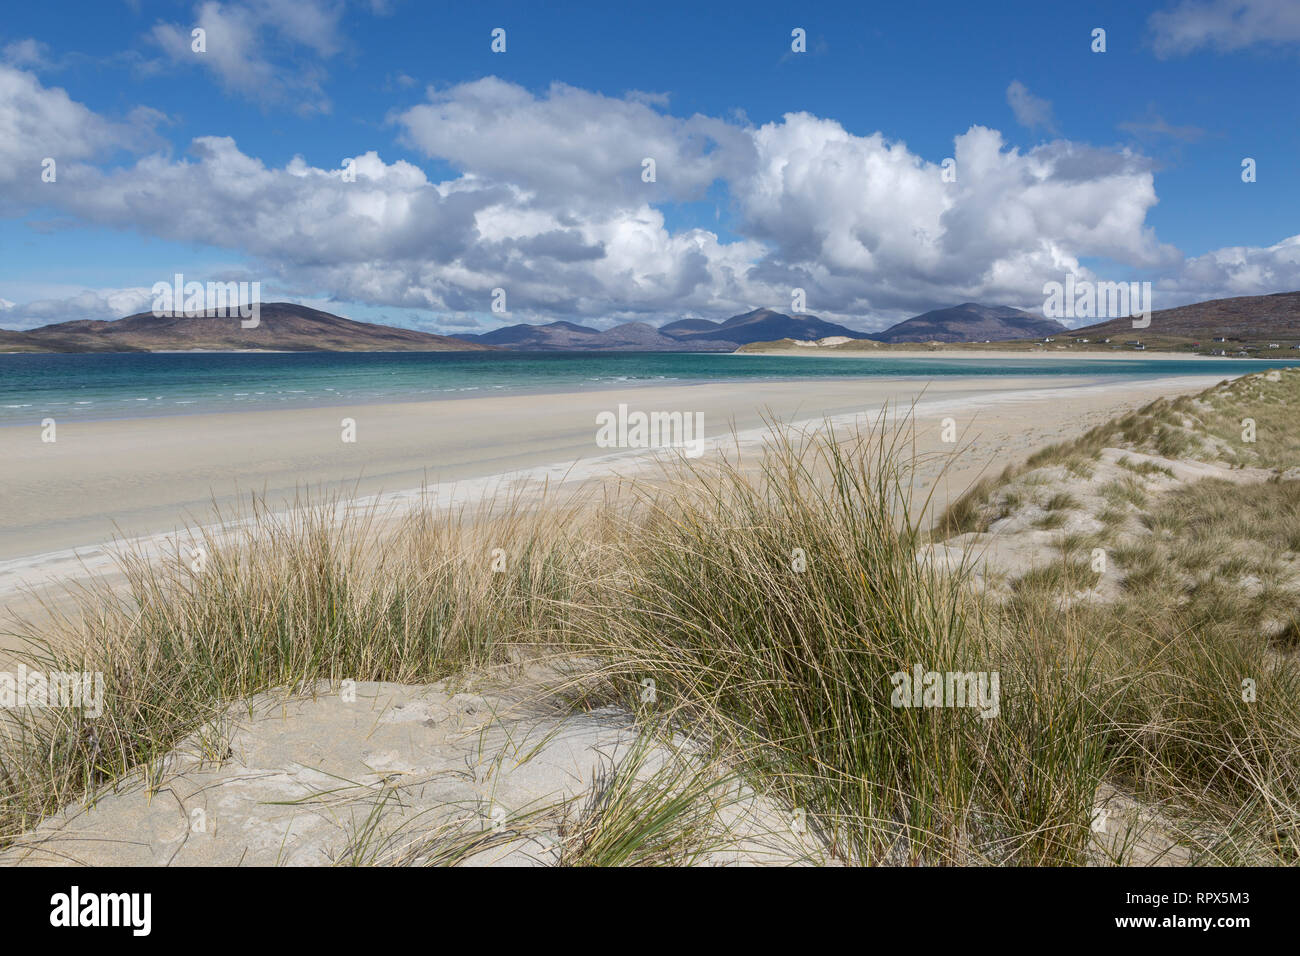 Looking towards Taransay and Luskentyre from the dunes at Seilebost, Isle of Harris, Outer Hebrides, Scotland - Stock Image